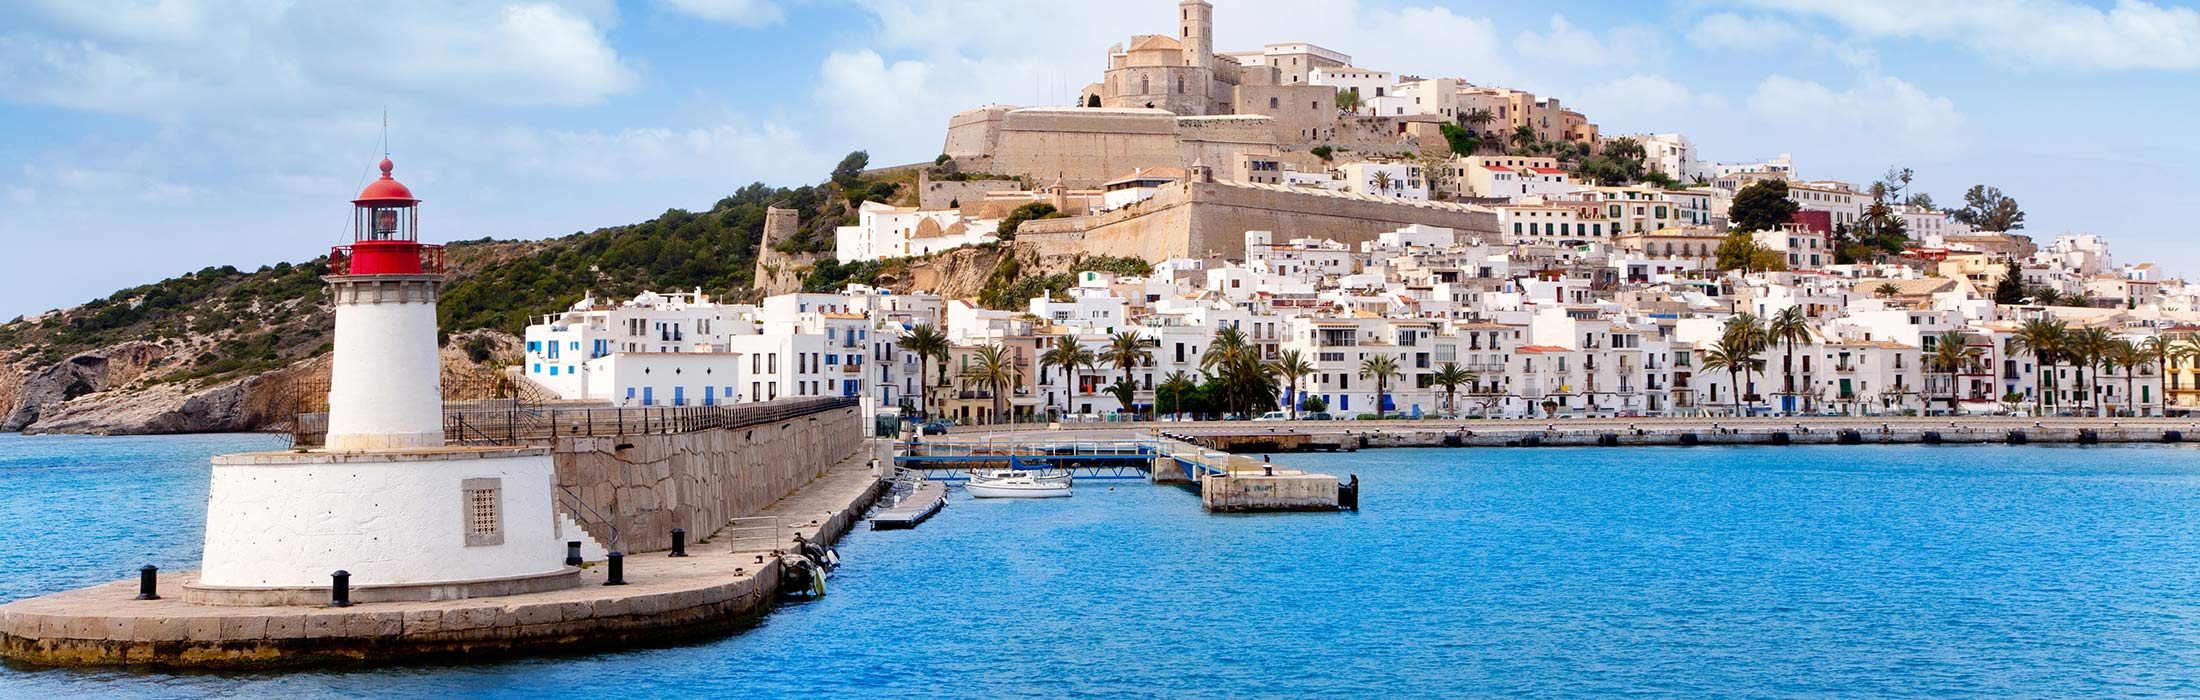 top yacht charter destinations mediterranean spain ibiza top slider 1